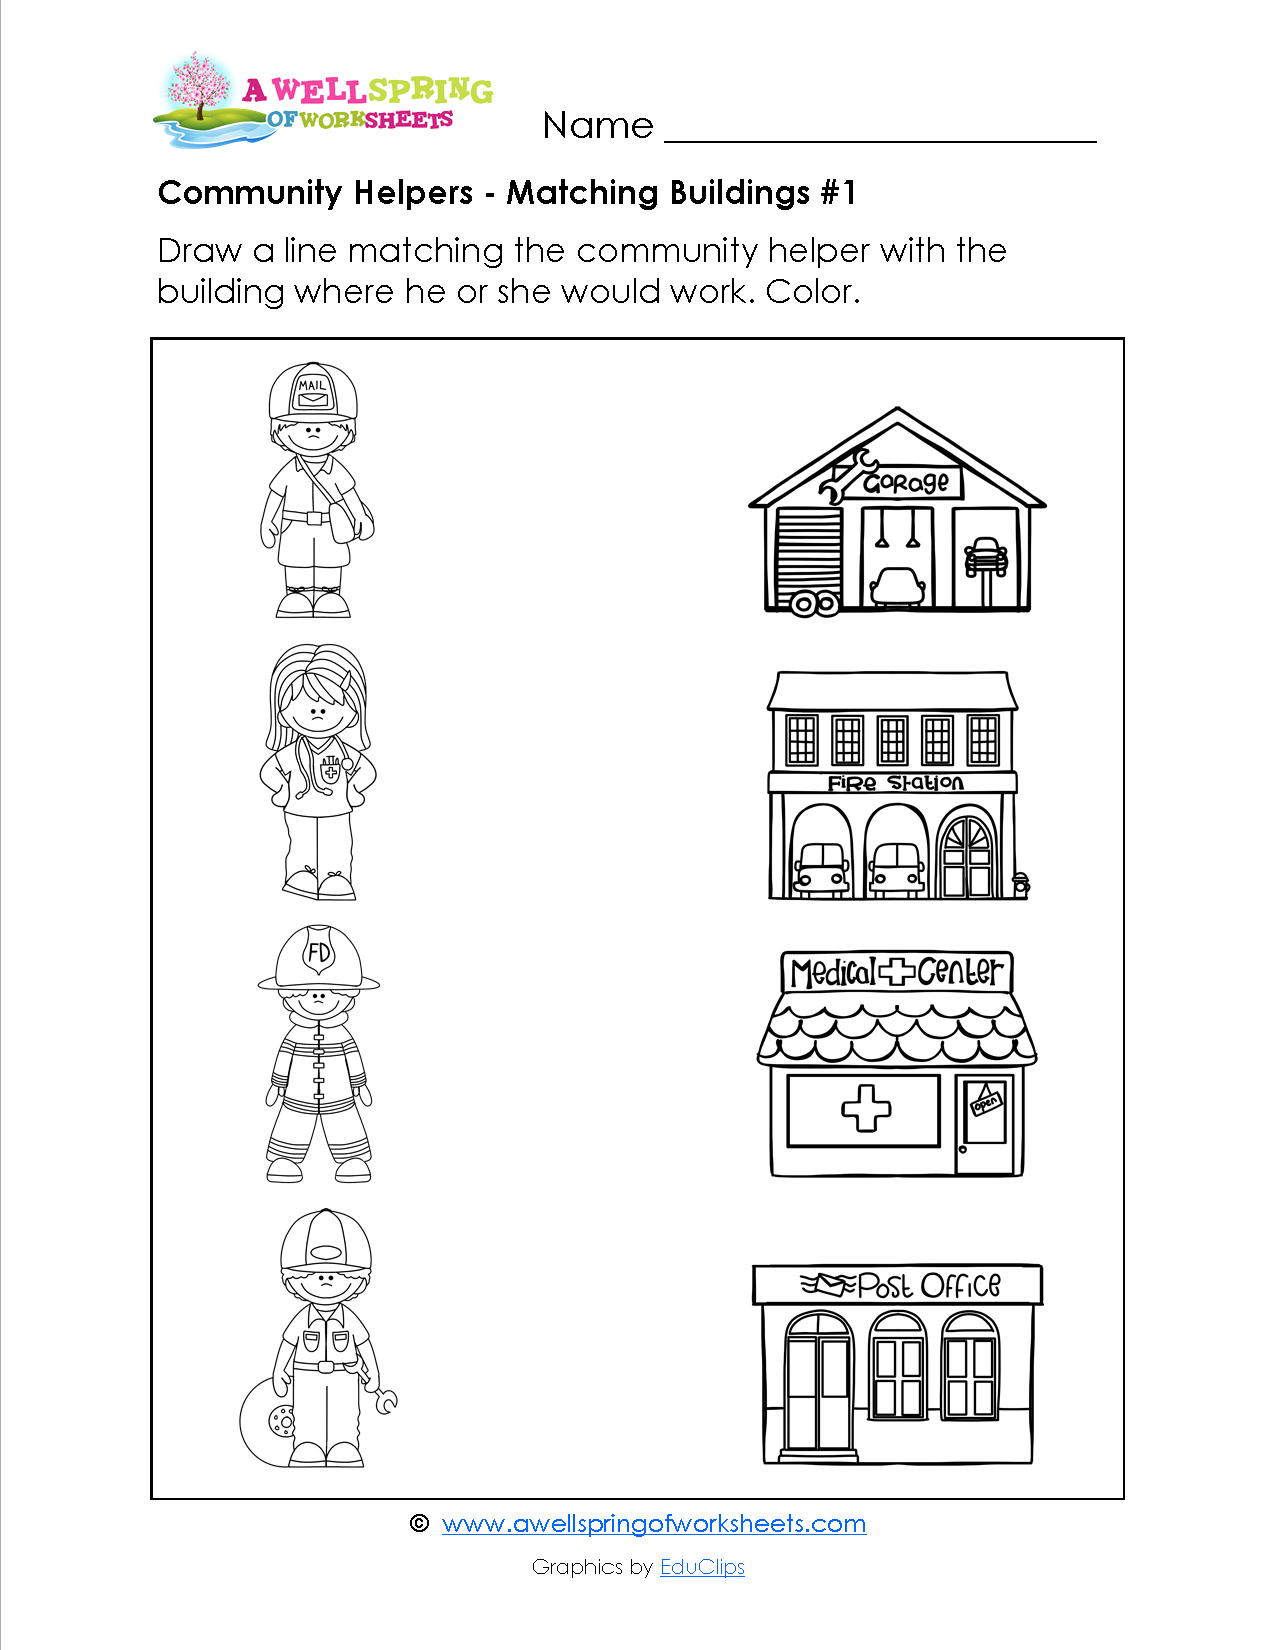 worksheet Community Helper Worksheets grade level worksheets fun community helpers and matching in these kids draw a line from the helper